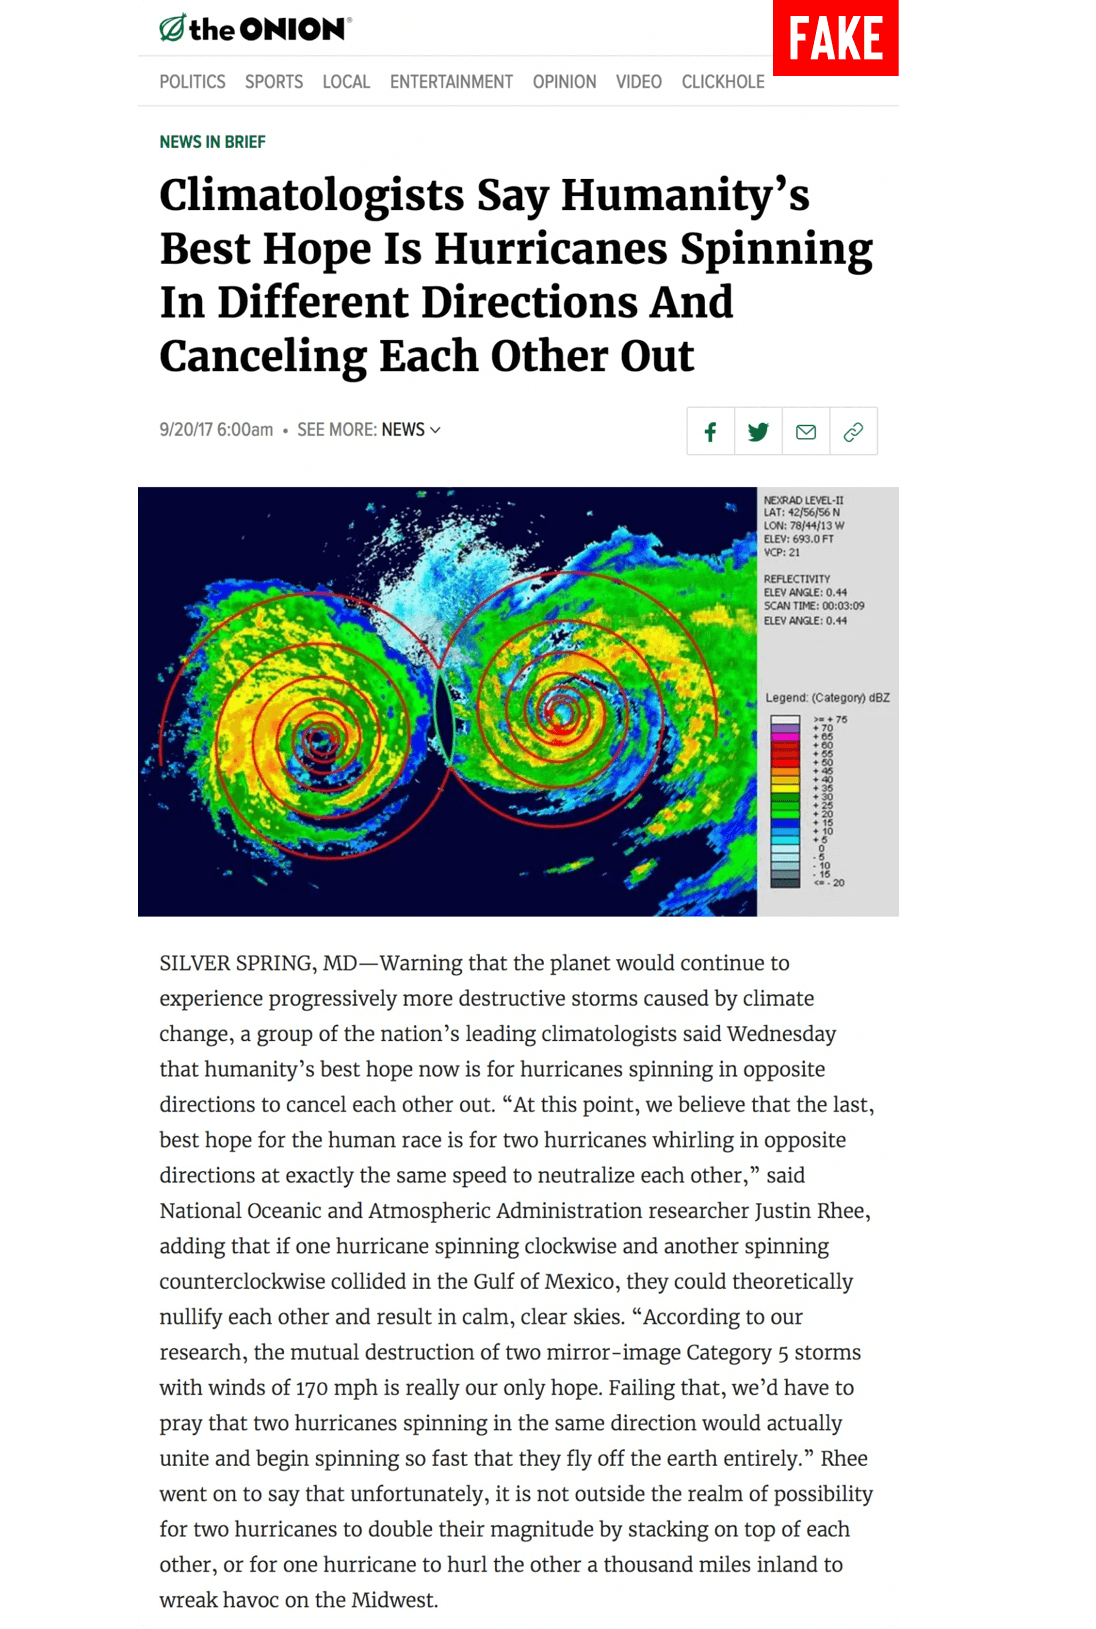 """An article in The Onion with the label Fake. Article title reads Climatologists Say Humanity's Best Hope Is Hurricanes Spinning In Different Directions And Canceling Each Other Out. Image of a doppler radar with two hurricanes spinning in opposite directions towards each other. Article reads Warning that the planet would continue to experience progressively more destructive storms caused by climate change, a group of the nation's leading climatologists said Wednesday that humanity's best hope now is for hurricanes spinning in opposite directions to cancel each other out. """"At this point, we believe that the last, best hope for the human race is for two hurricanes whirling in opposite directions at exactly the same speed to neutralize each other,"""" said National Oceanic and Atmospheric Administration researcher Justin Rhee, adding that if one hurricane spinning clockwise and another spinning counterclockwise collided in the Gulf of Mexico, they could theoretically nullify each other and result in calm, clear skies. """"According to our research, the mutual destruction of two mirror-image Category 5 storms with winds of 170 mph is really our only hope. Failing that, we'd have to pray that two hurricanes spinning in the same direction would actually unite and begin spinning so fast that they fly off the earth entirely."""" Rhee went on to say that unfortunately, it is not outside the realm of possibility for two hurricanes to double their magnitude by stacking on top of each other, or for one hurricane to hurl the other a thousand miles inland to wreak havoc on the Midwest."""